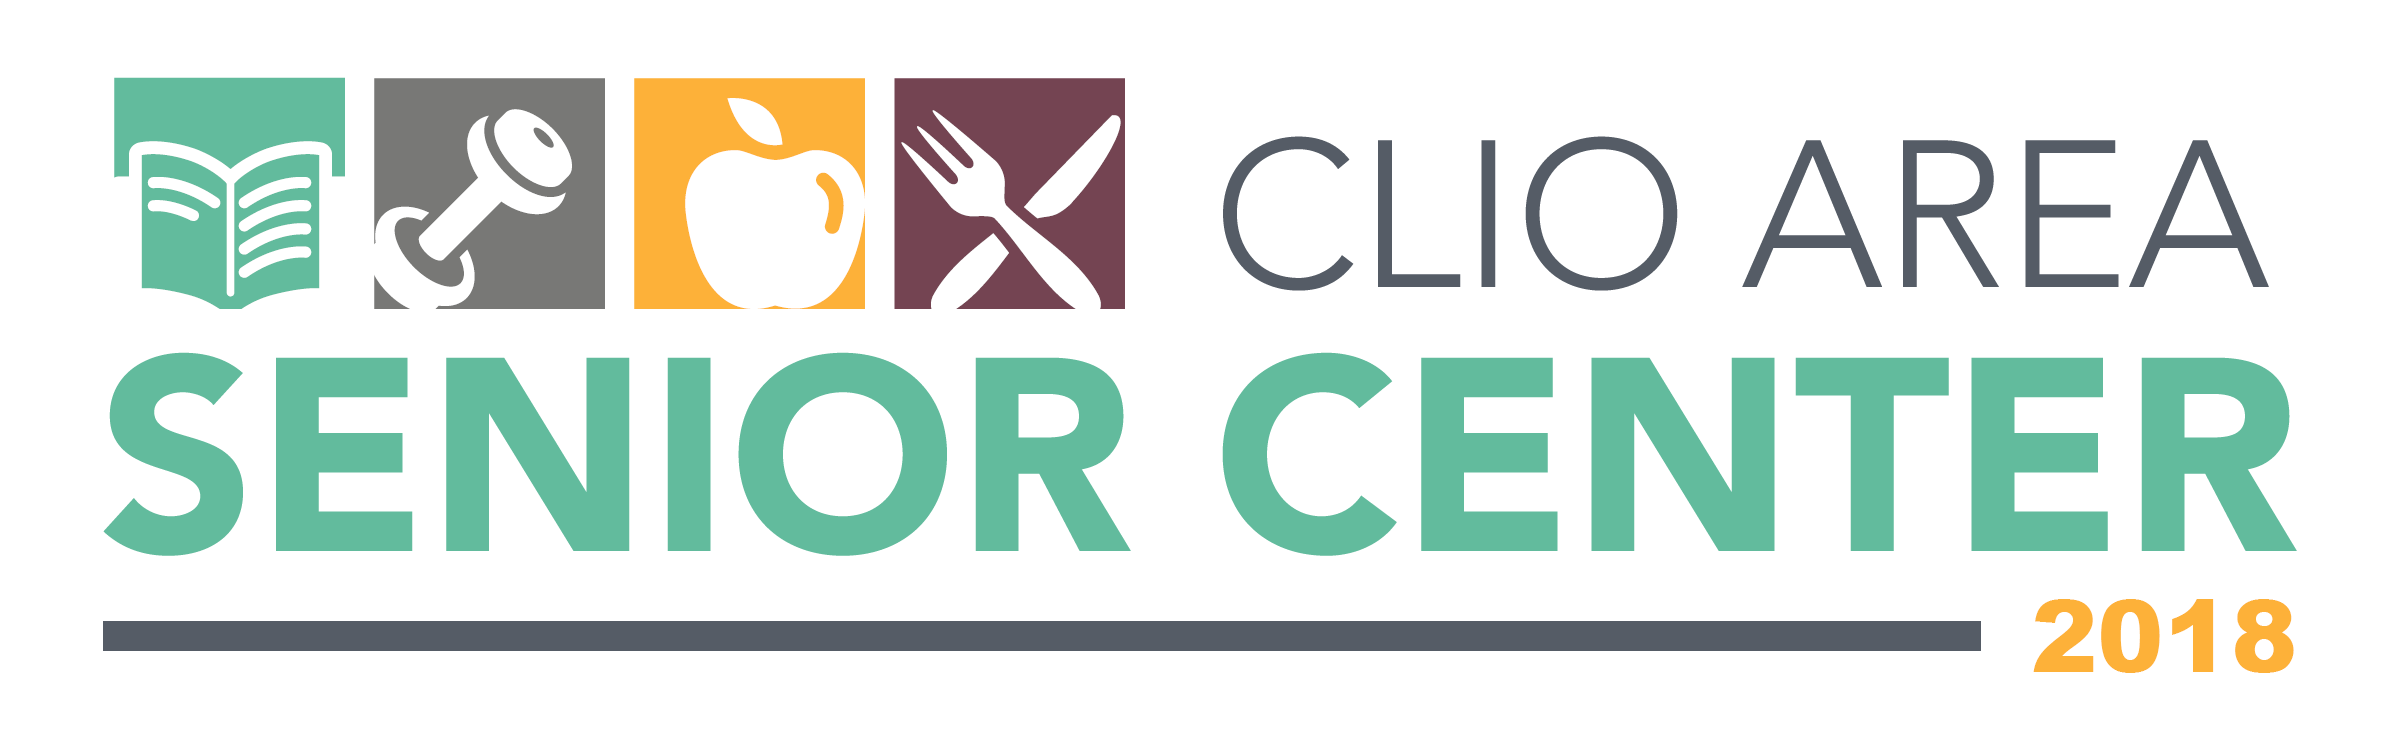 Website clipart welcome center. To clio area senior